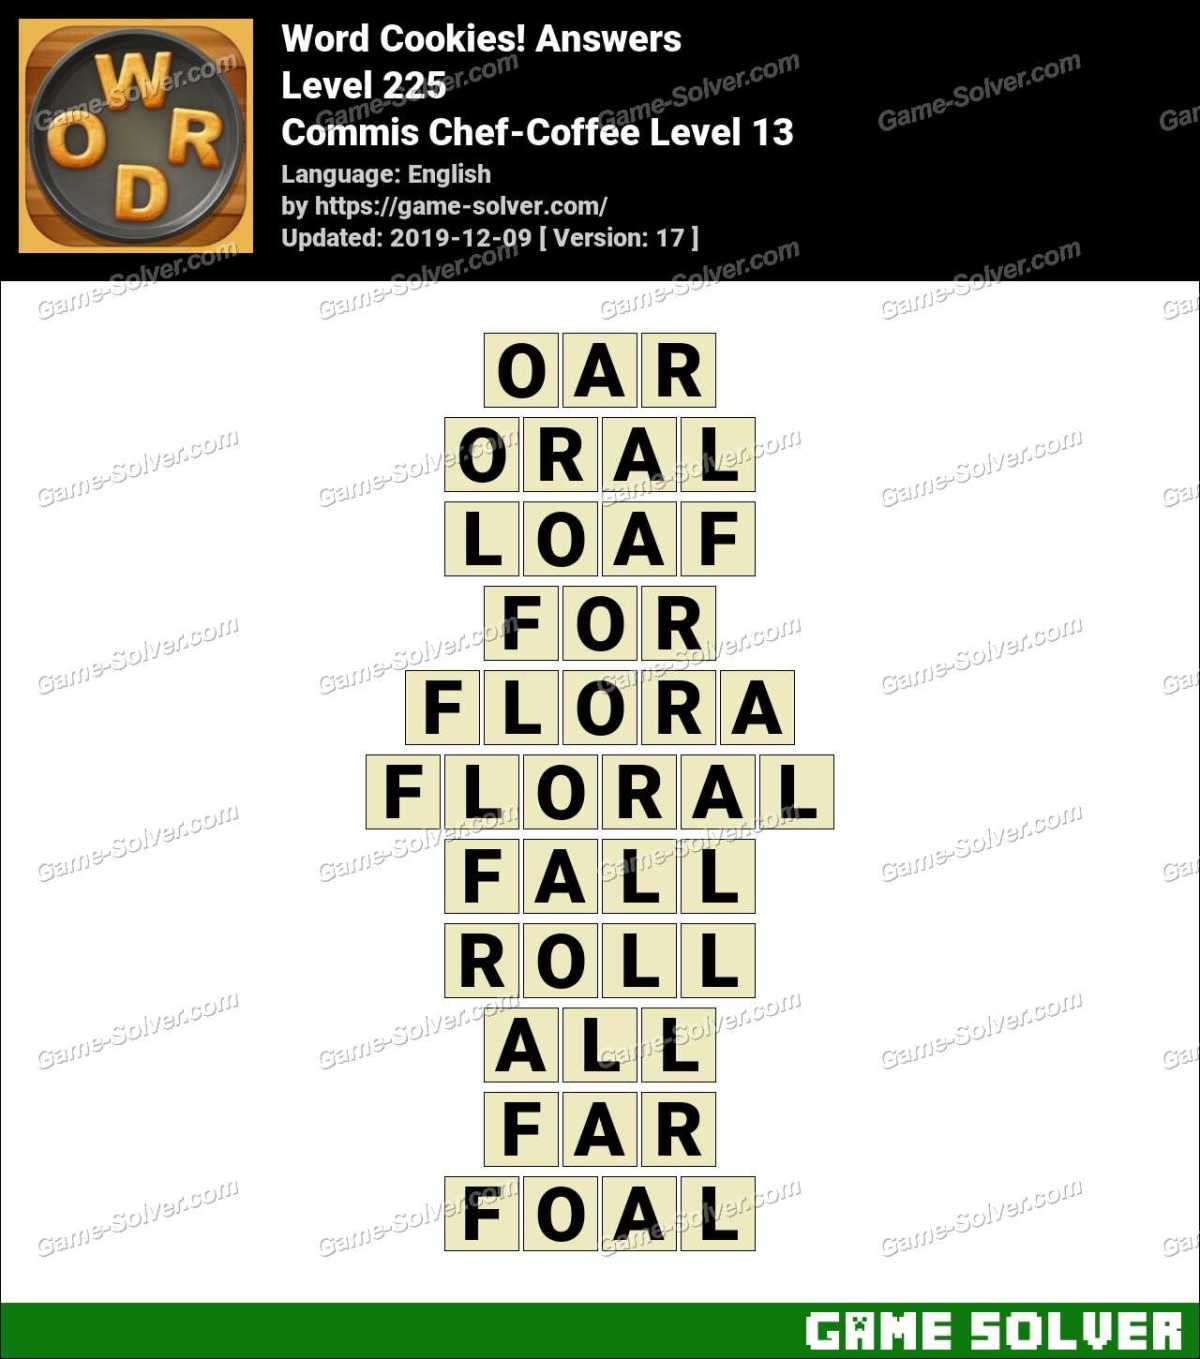 Word Cookies Commis Chef-Coffee Level 13 Answers